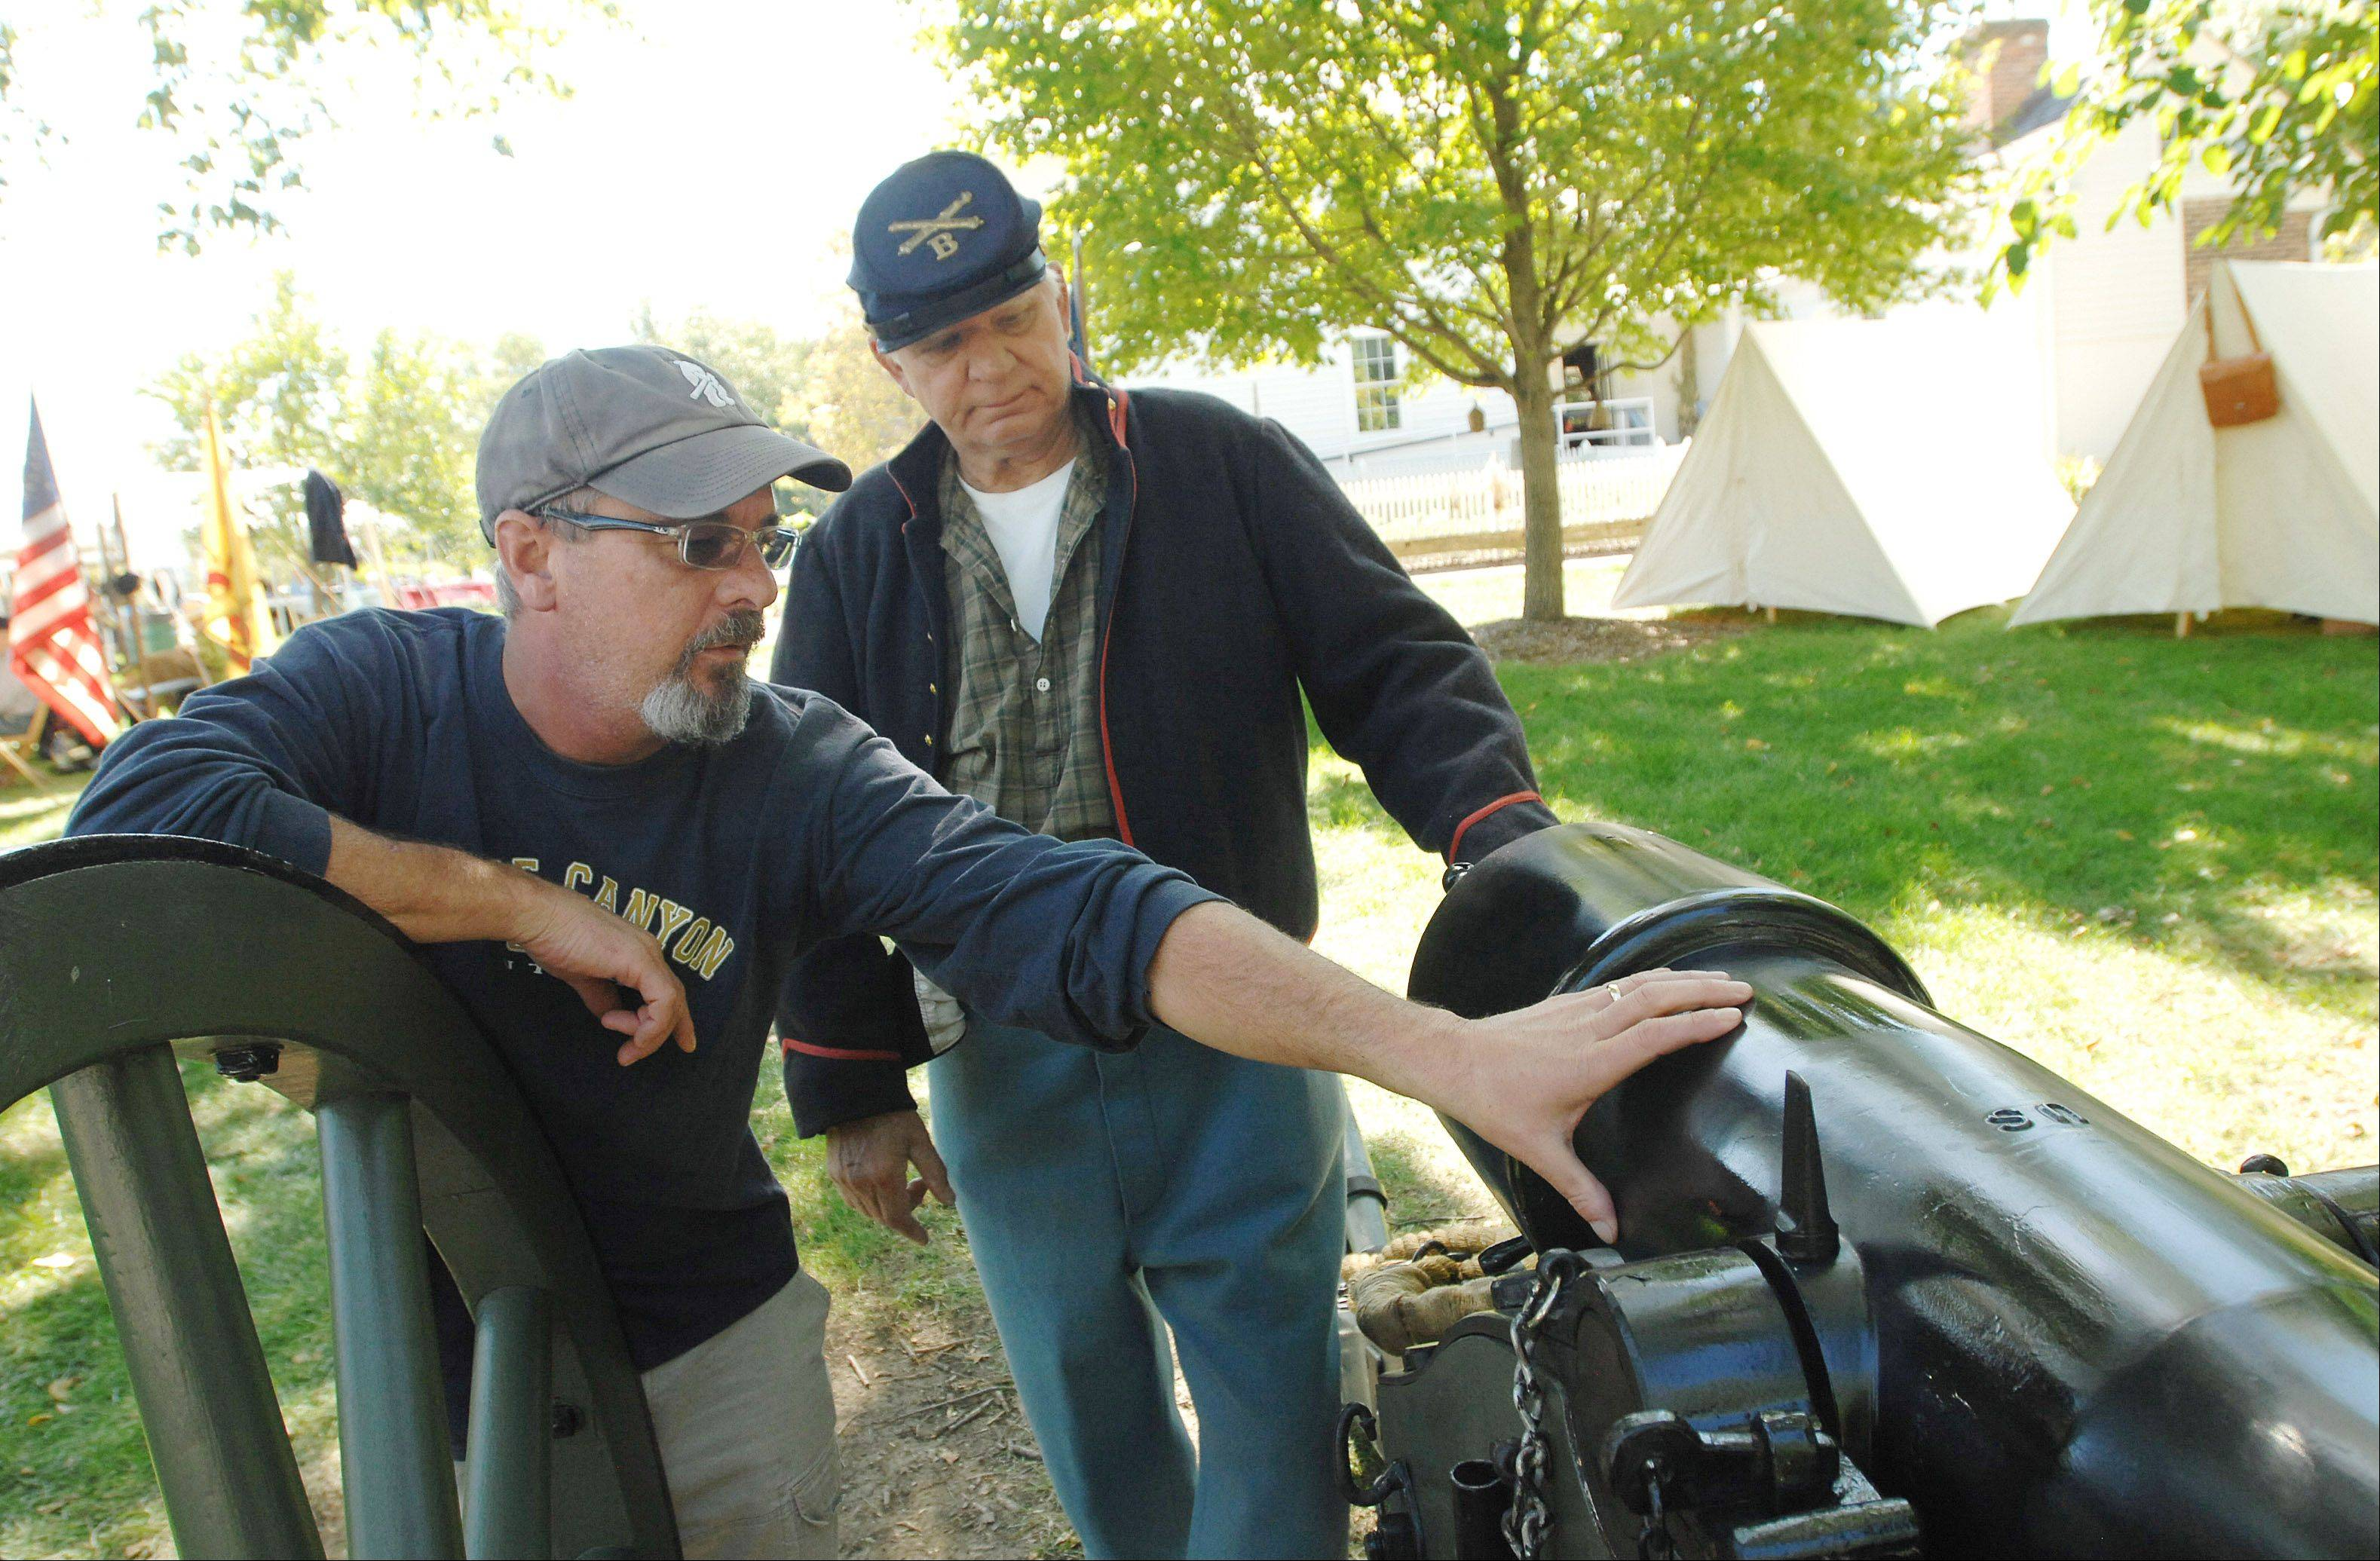 Re-enactor Claude Pagacz of Elmhurst explains a Civil War-era cannon to Matt Fink of Naperville on Saturday during Depot Days in Lisle.